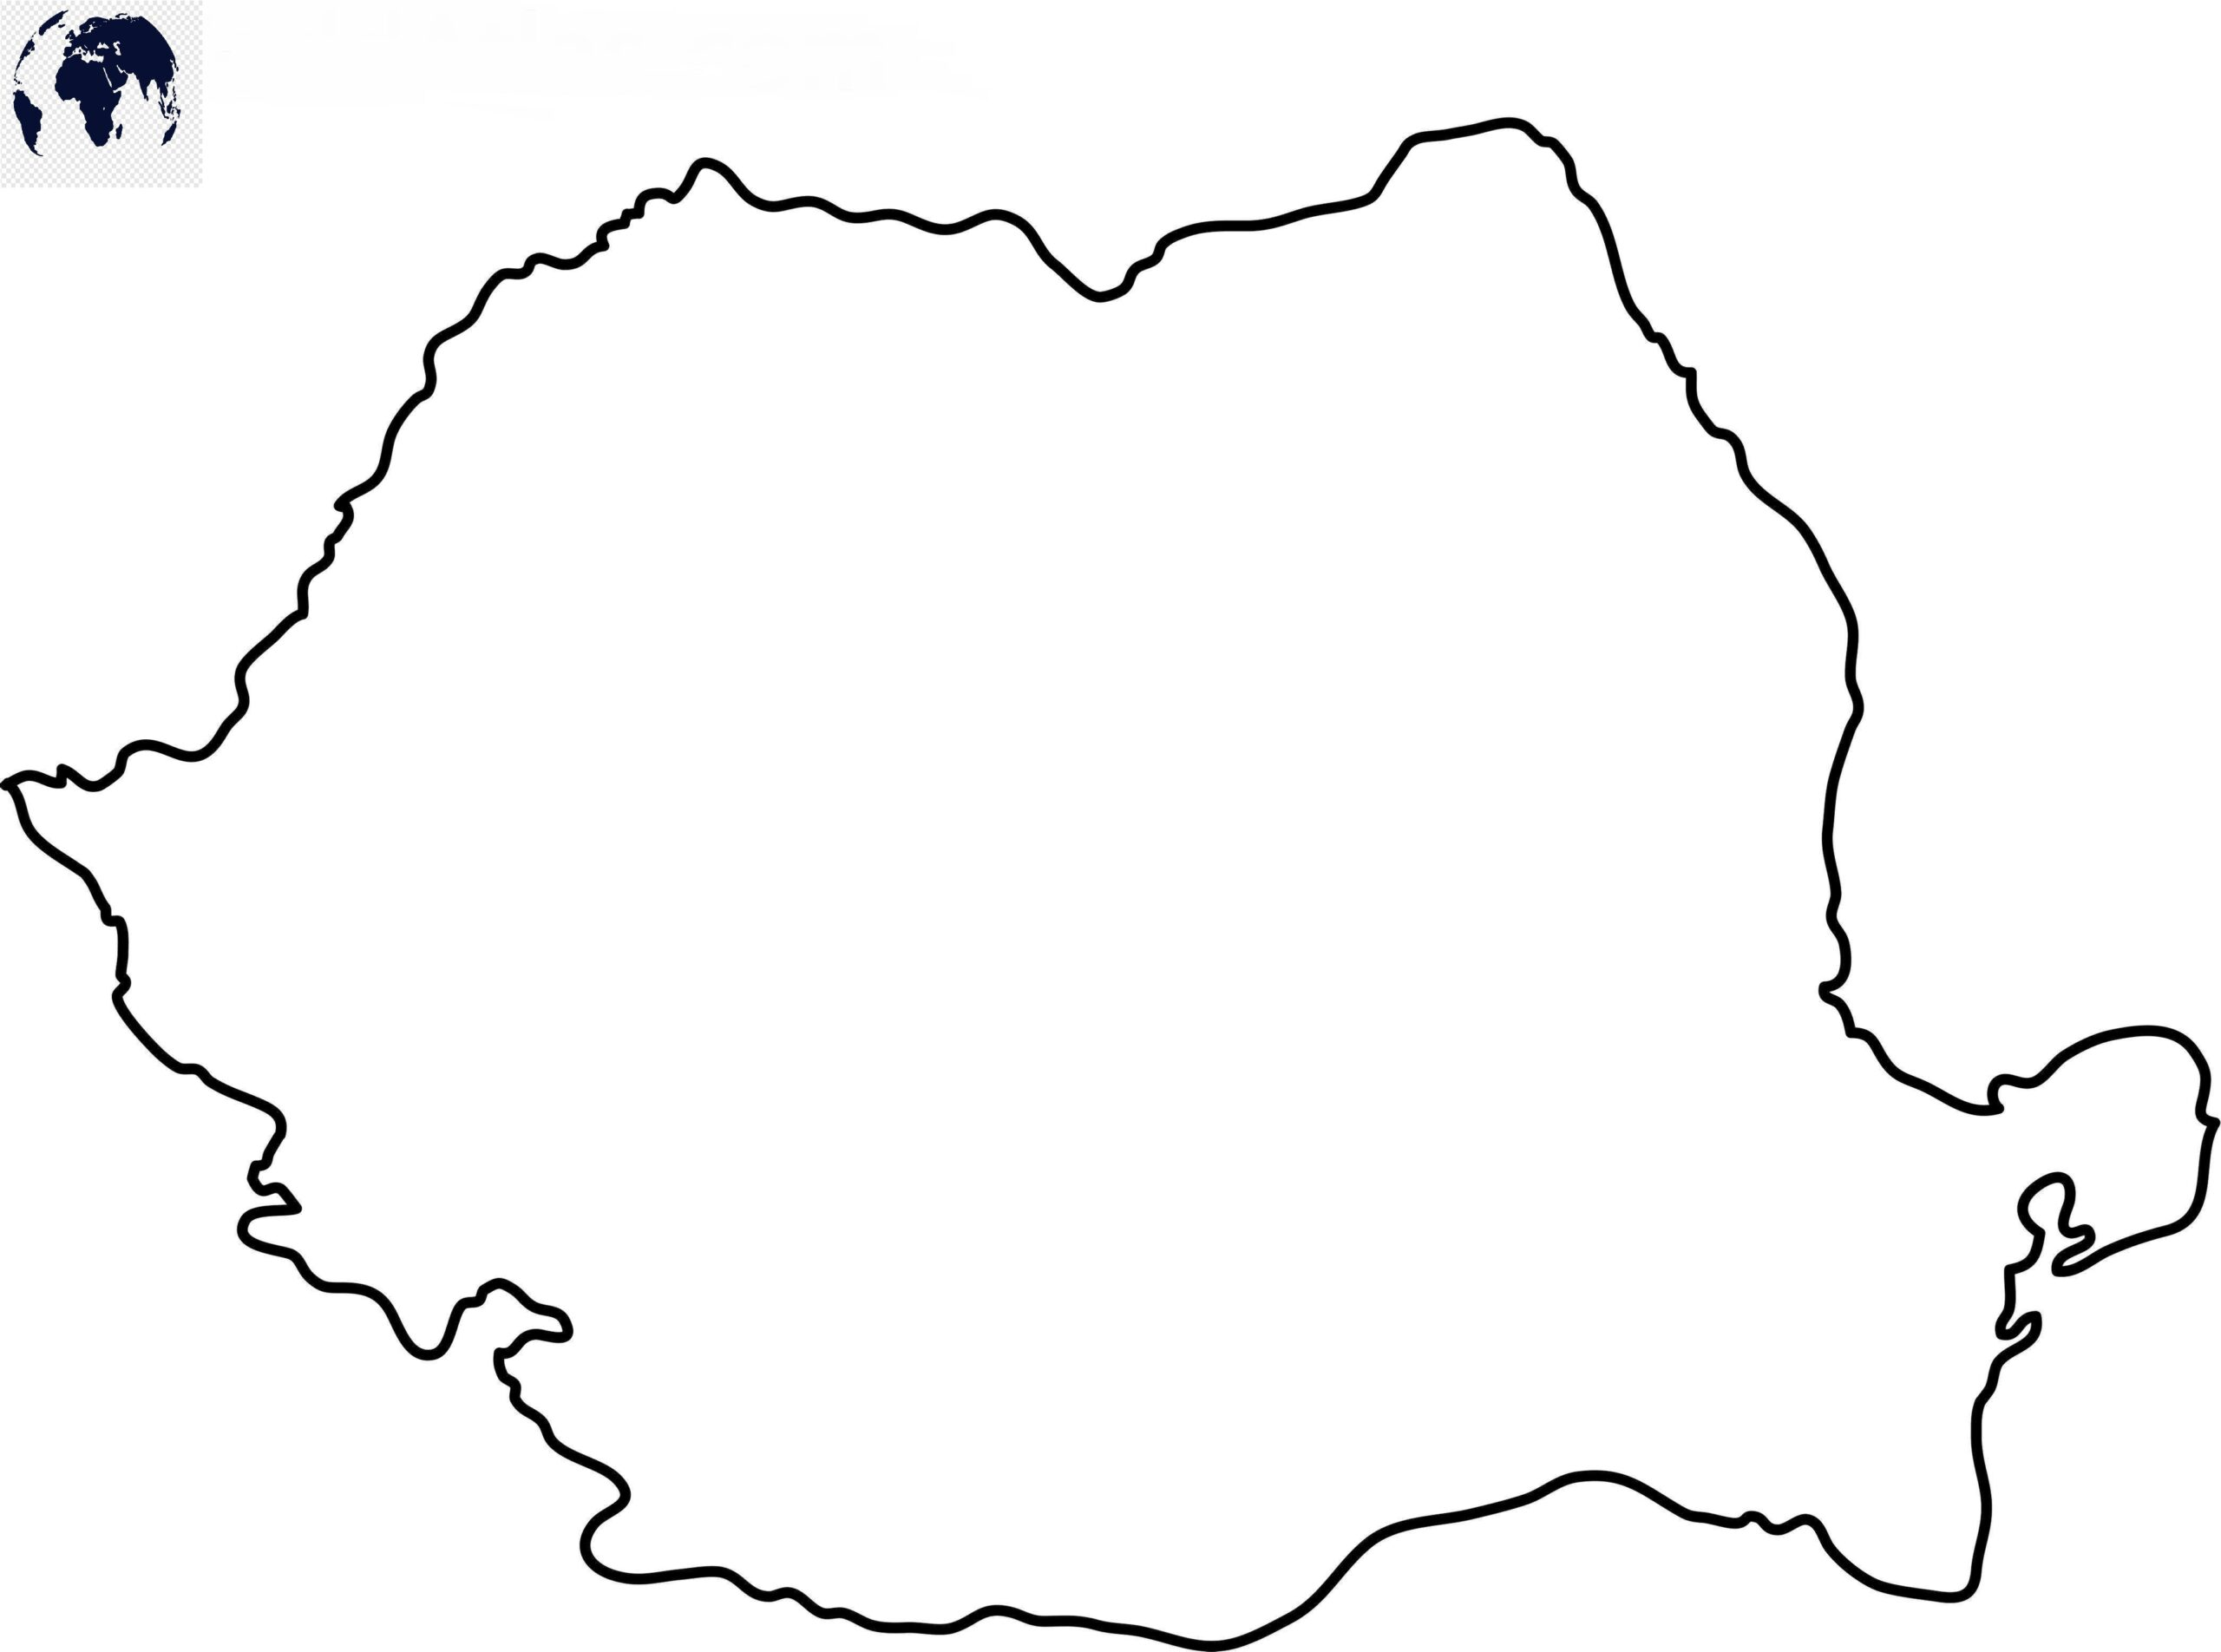 Blank Map of Romania – Outline